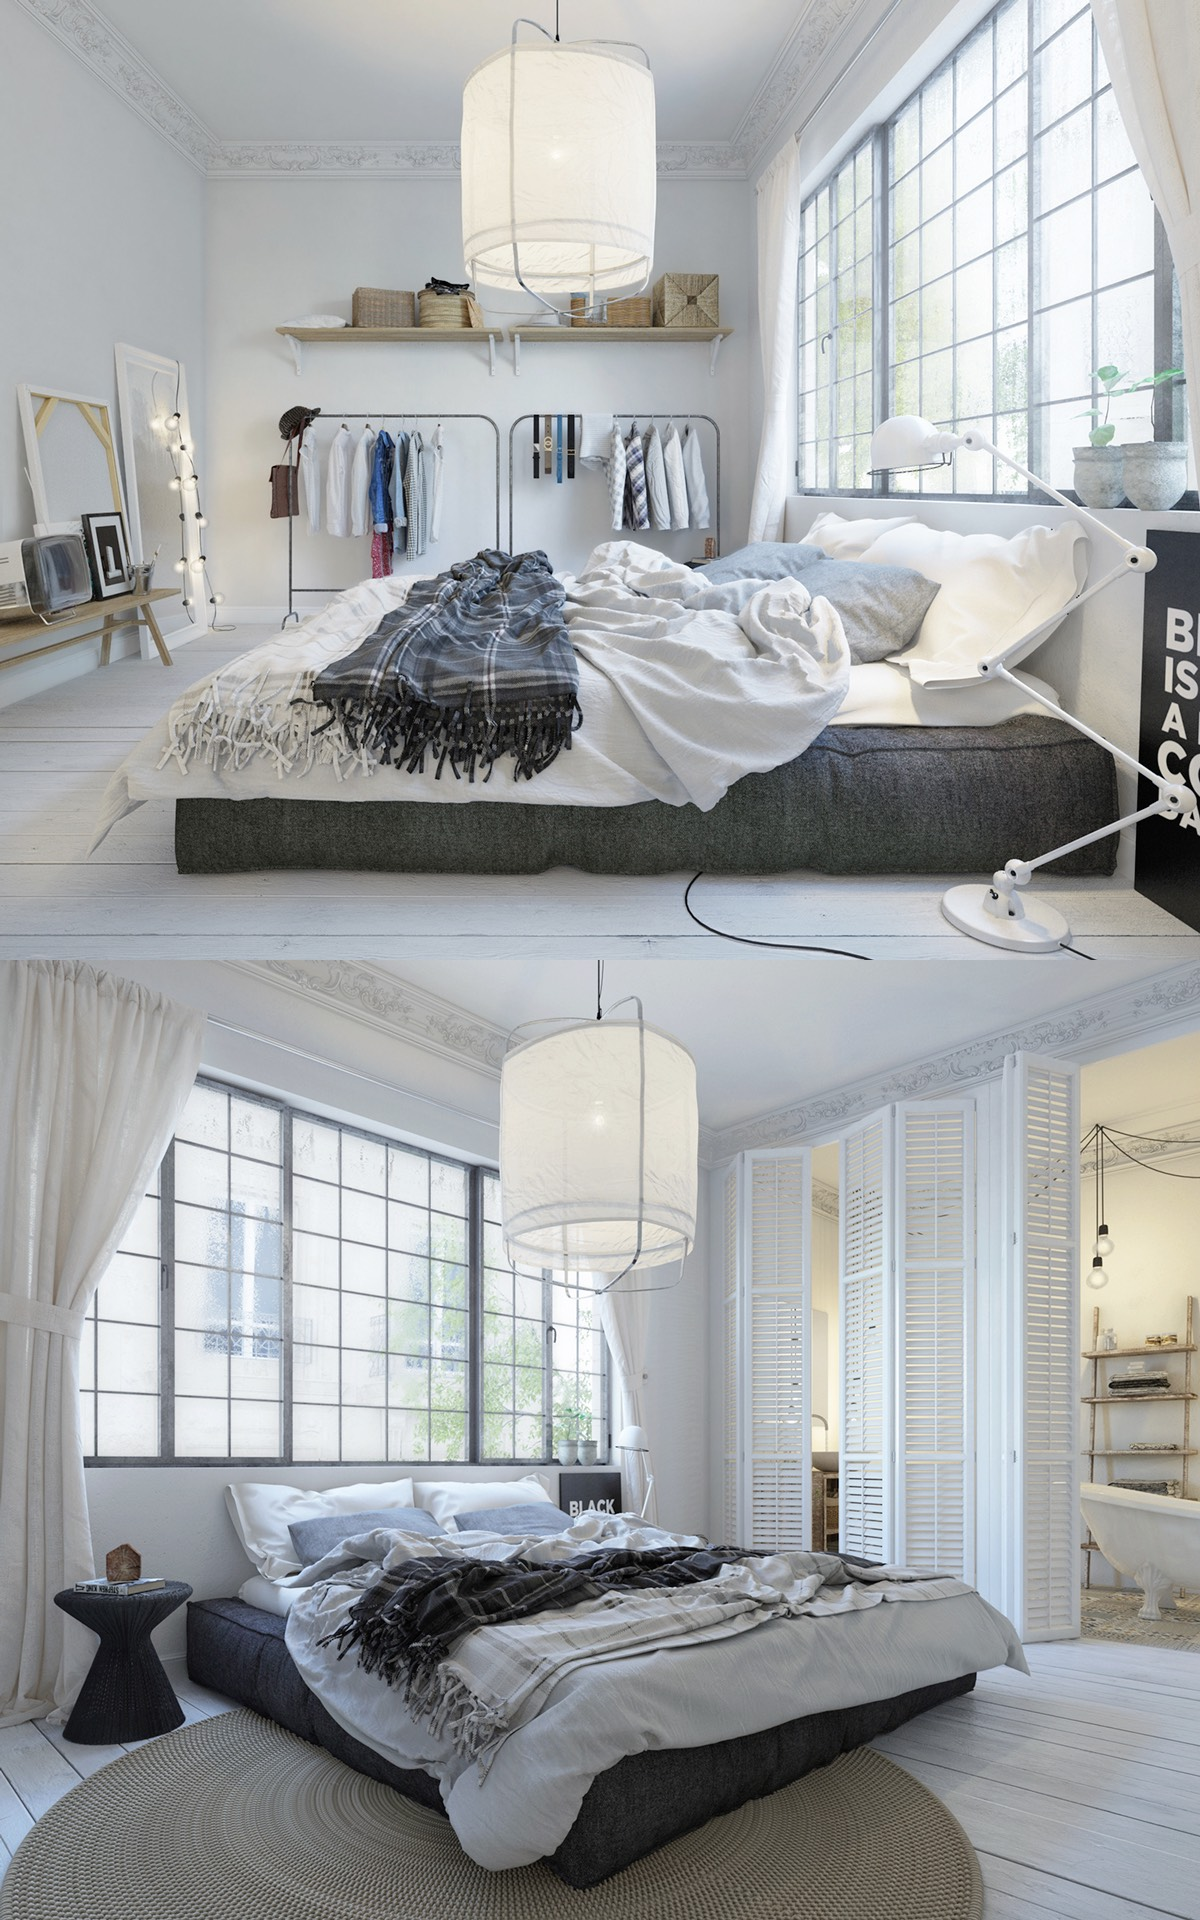 scandinavian bedrooms ideas and inspiration. Black Bedroom Furniture Sets. Home Design Ideas